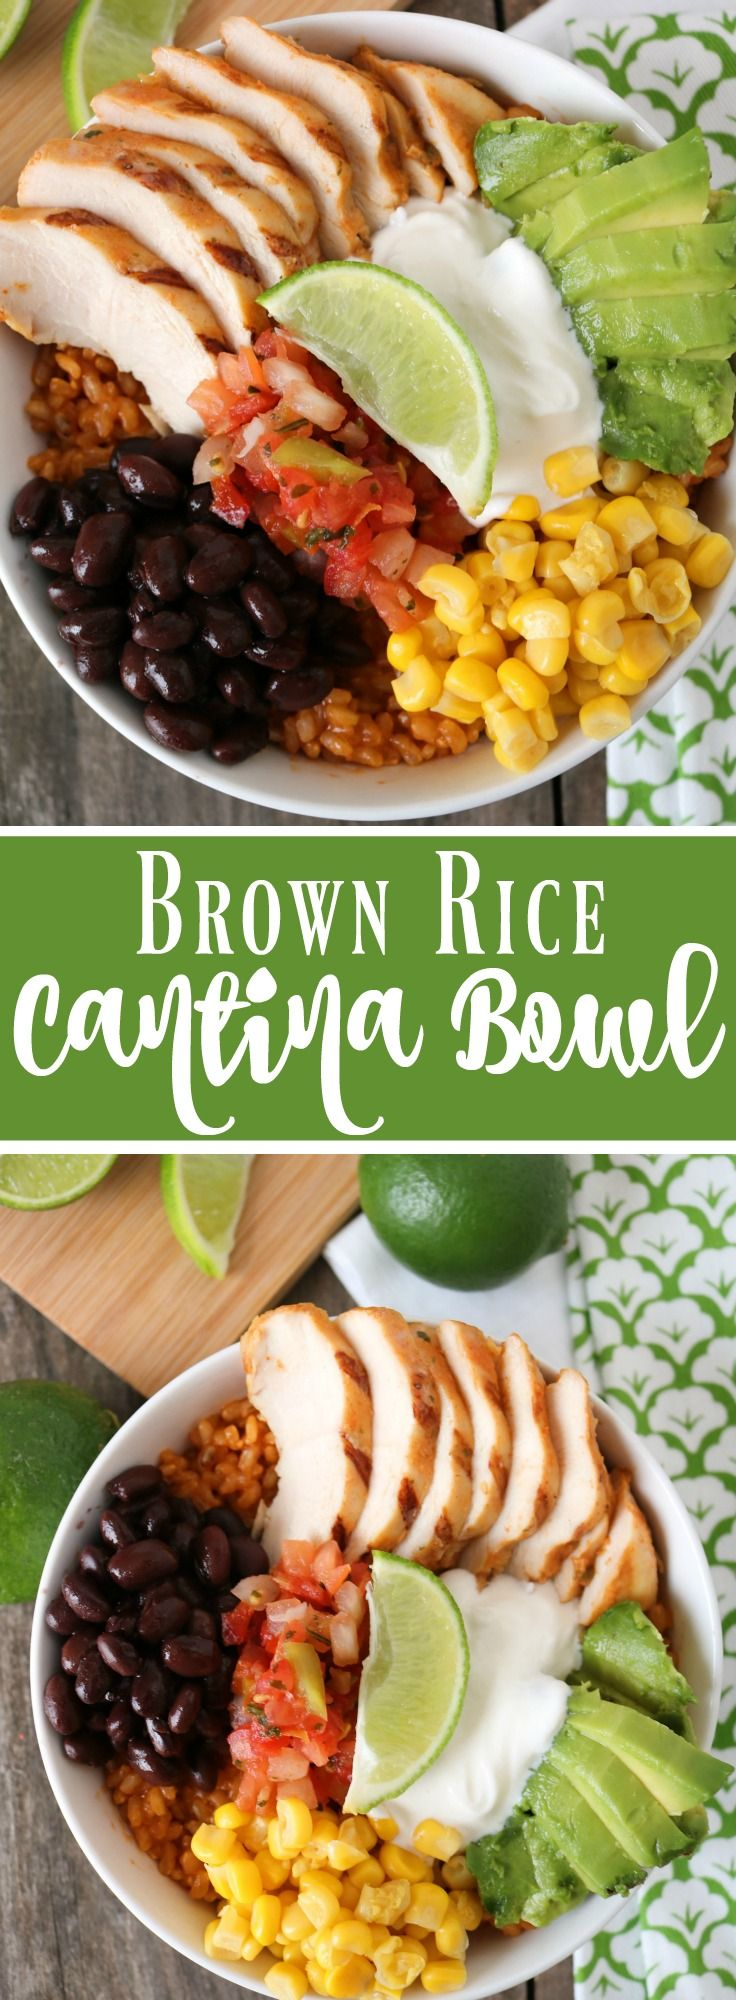 Cook your brown rice in enchilada sauce to give this Brown Rice Cantina Bowl and extra kick!